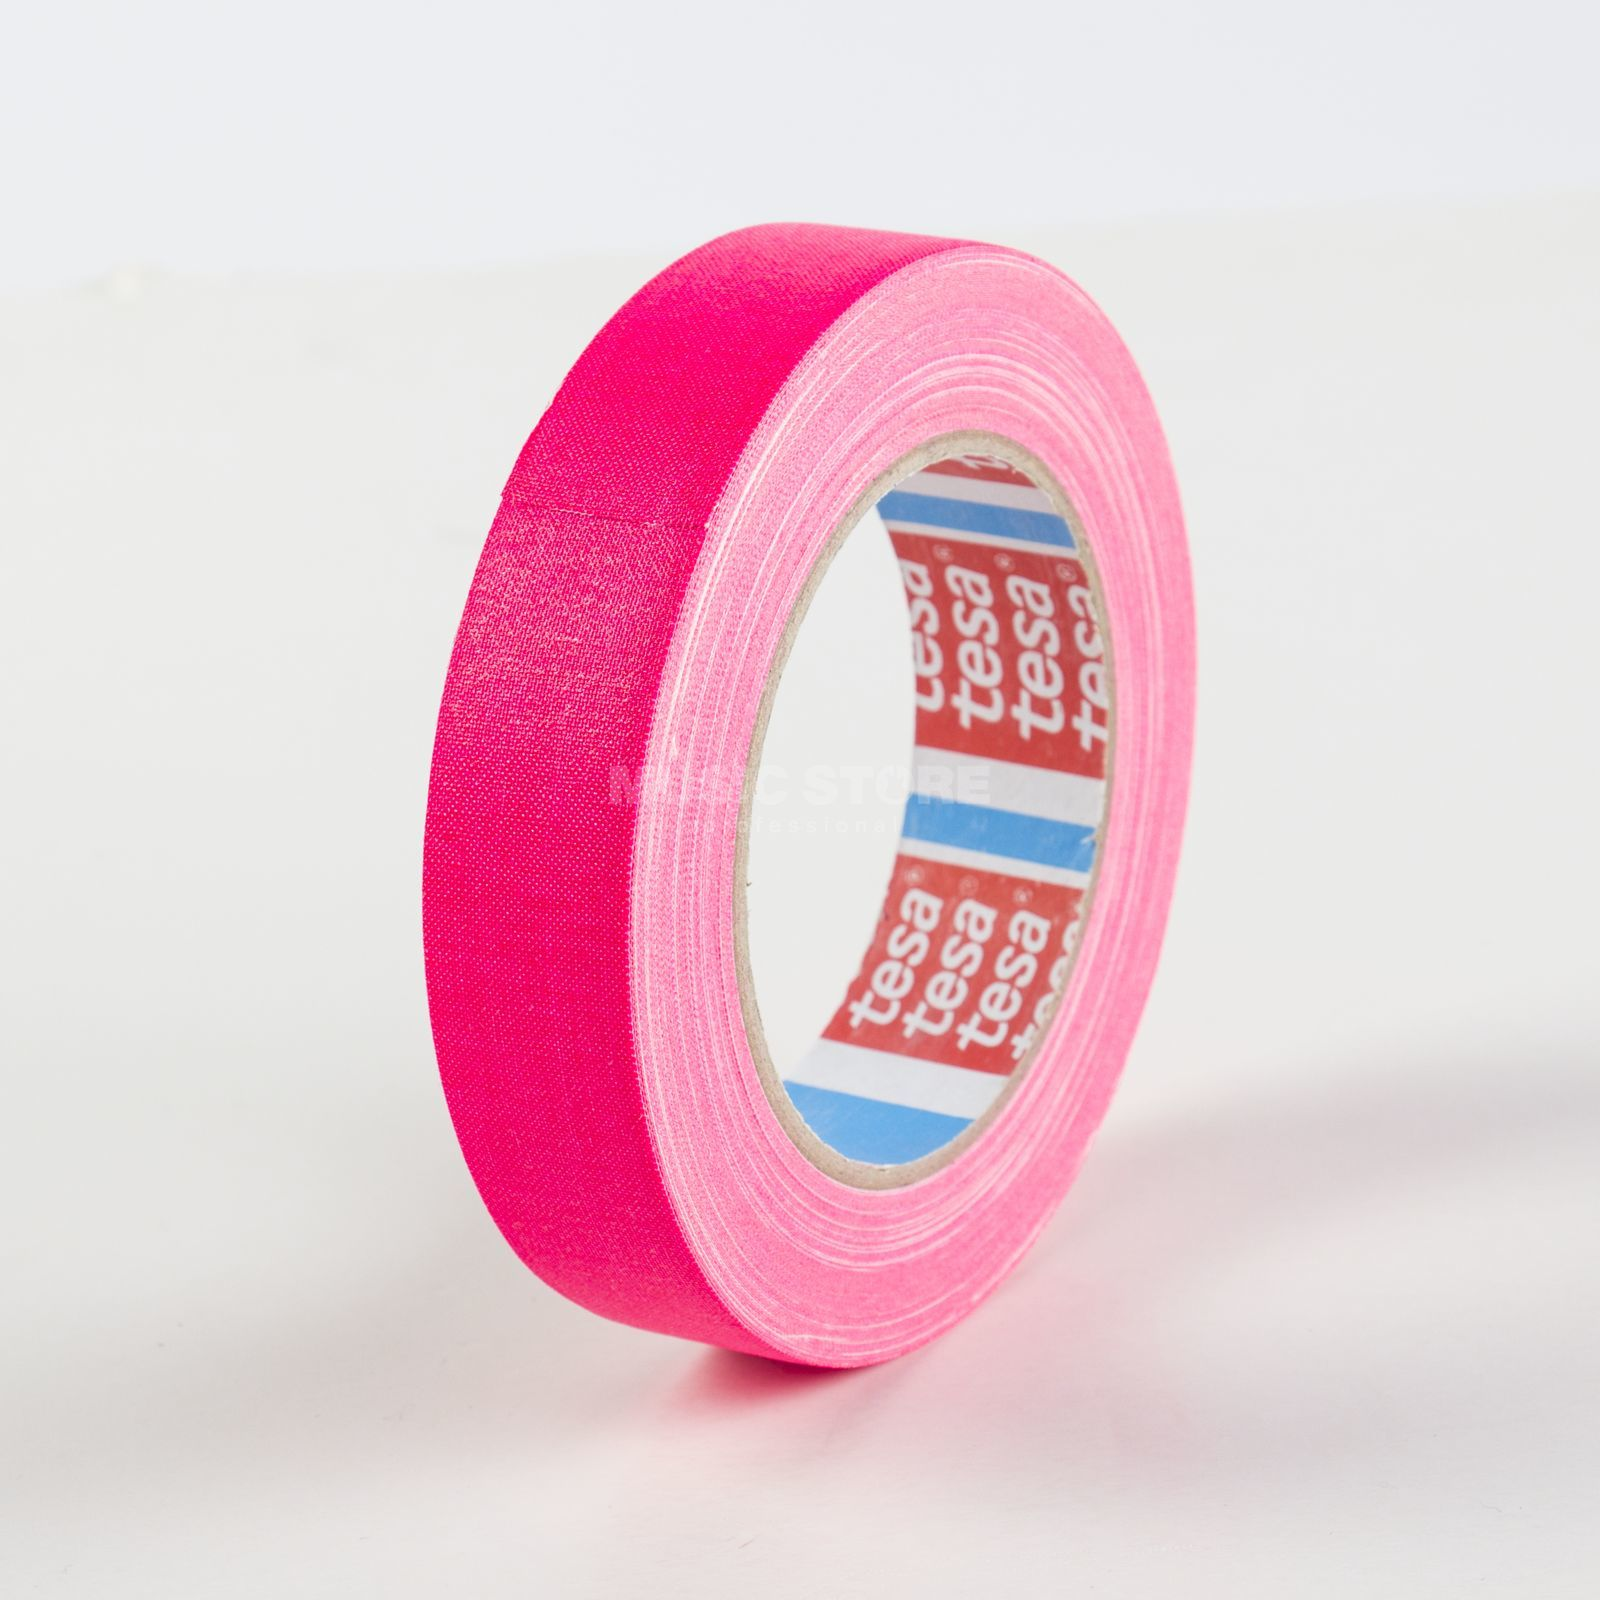 Tesa Highlight Gaffa Tape 4671 neonpink, 25m, 25mm Produktbild